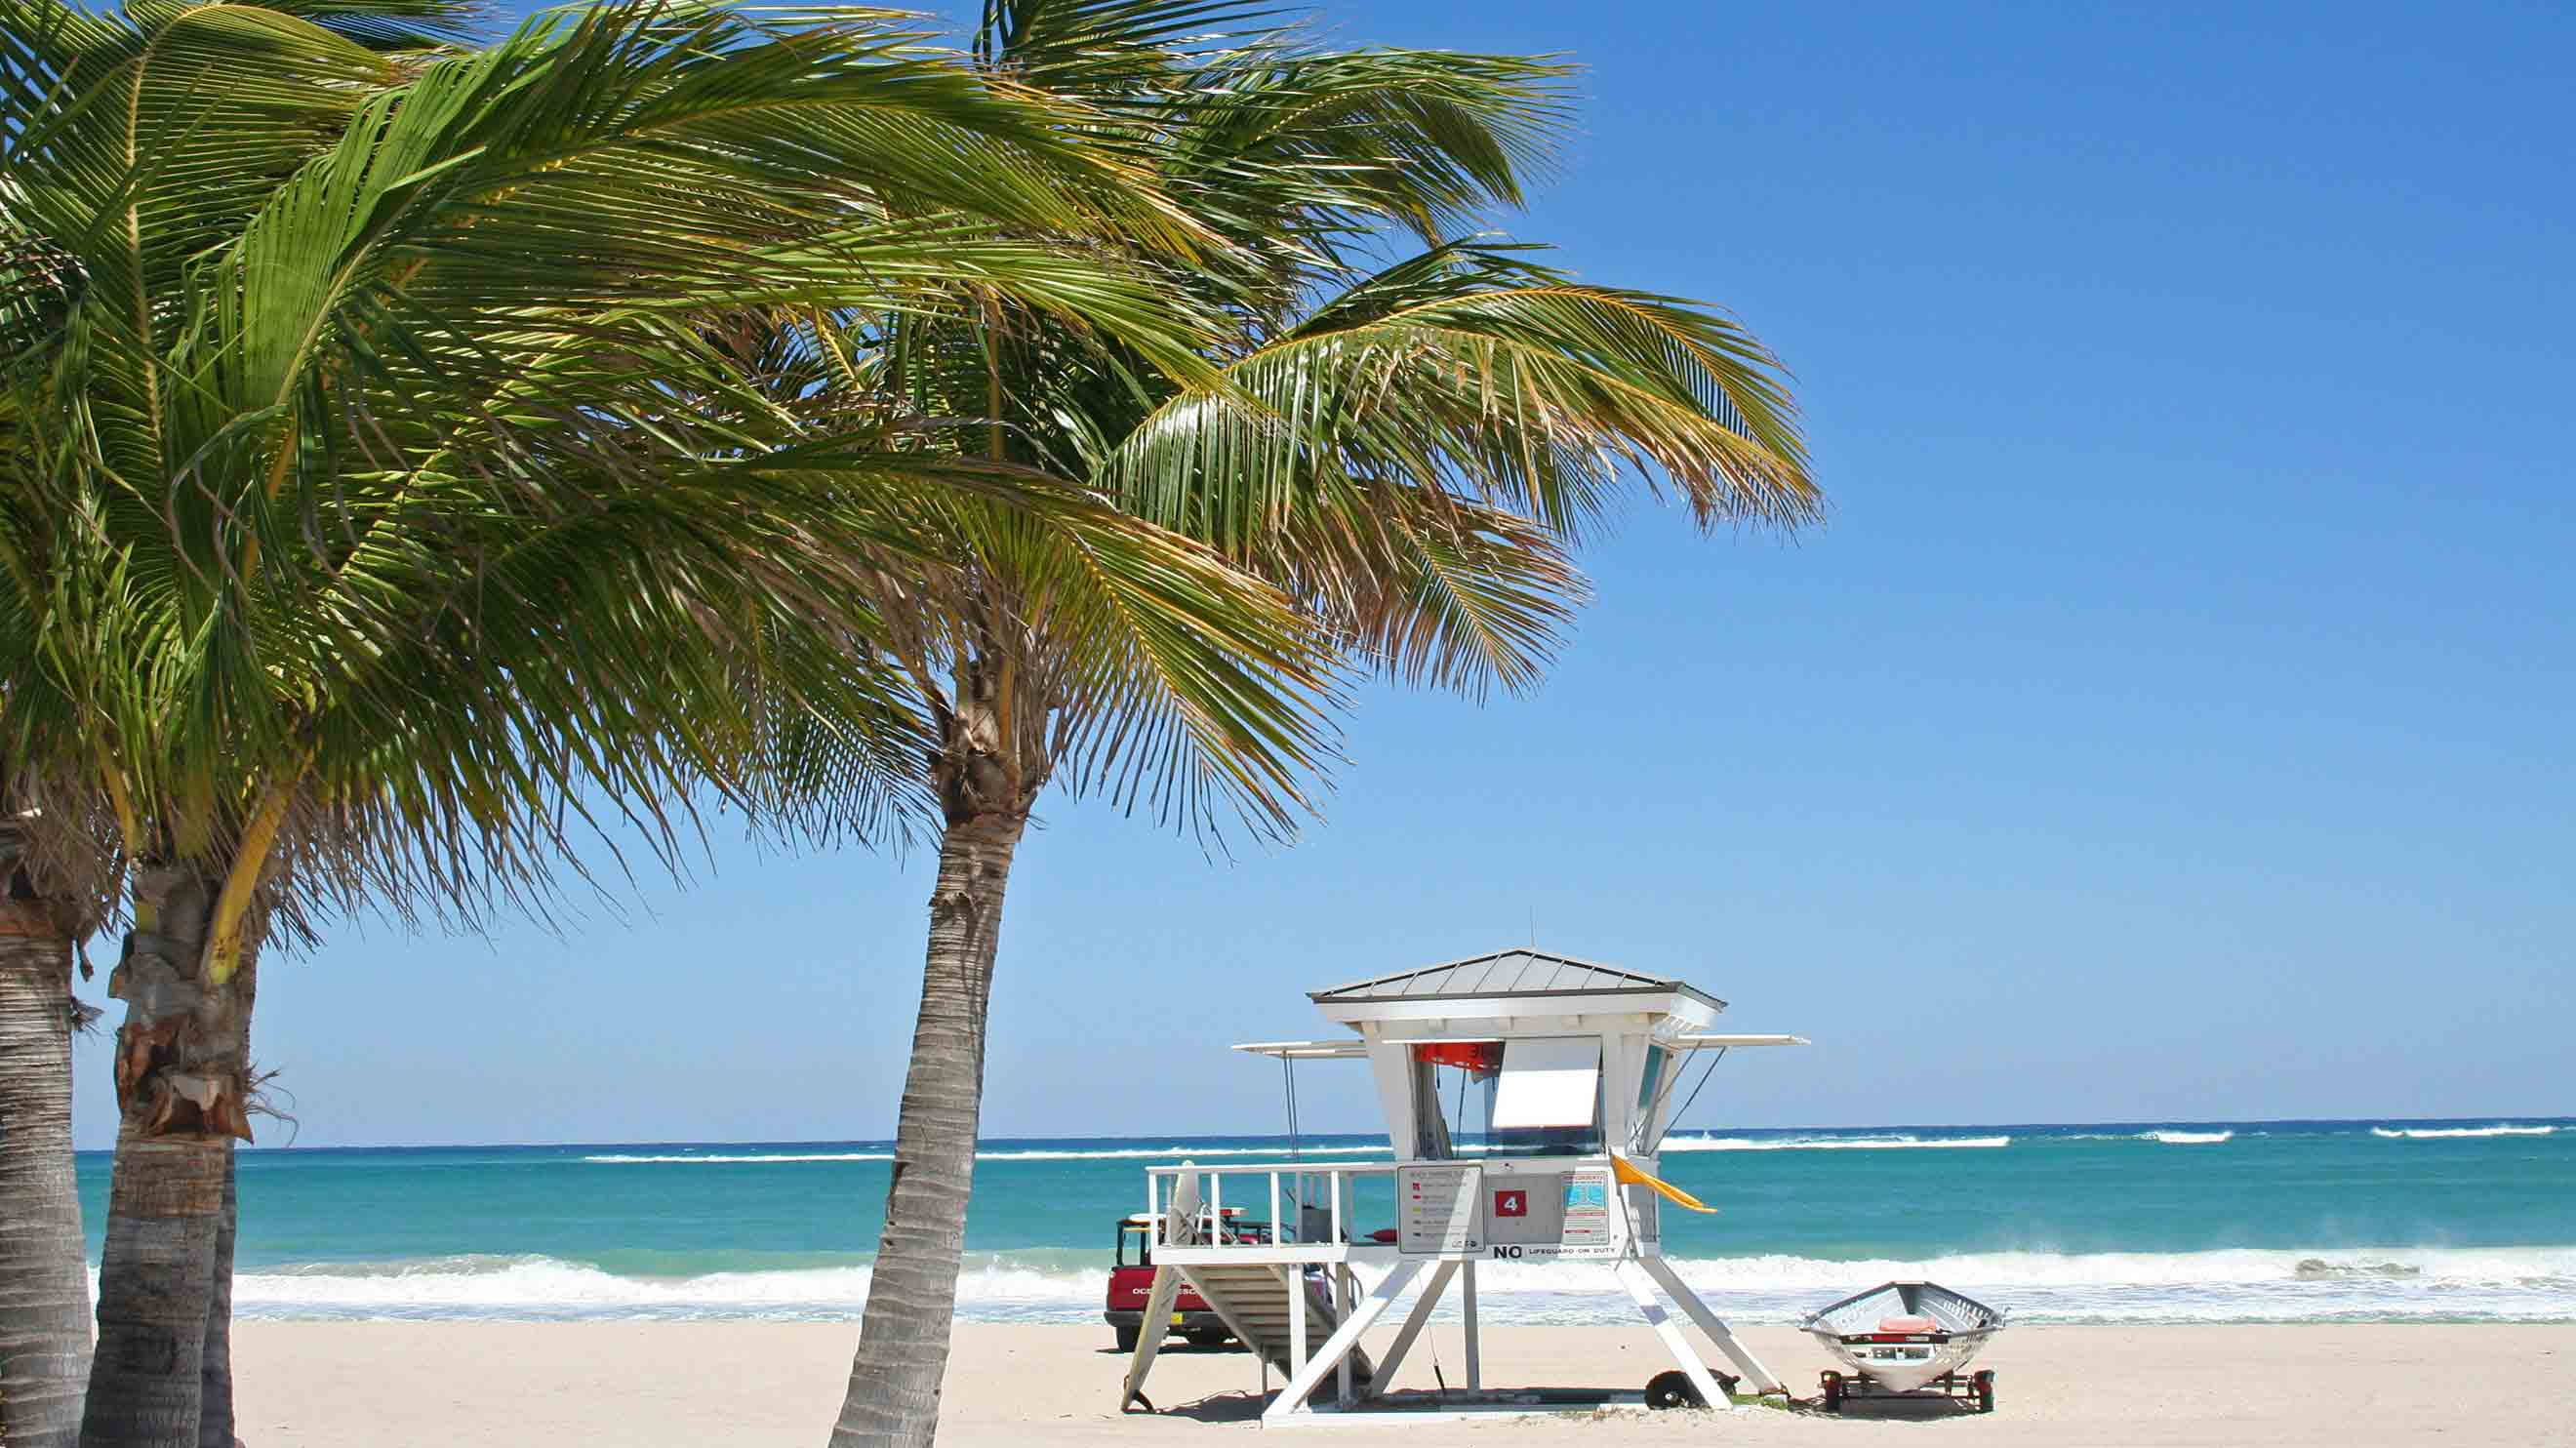 6d67c149 Deerfield Beach Vacation Packages: Bundle & Save up to $C634 in 2019 |  Expedia.ca